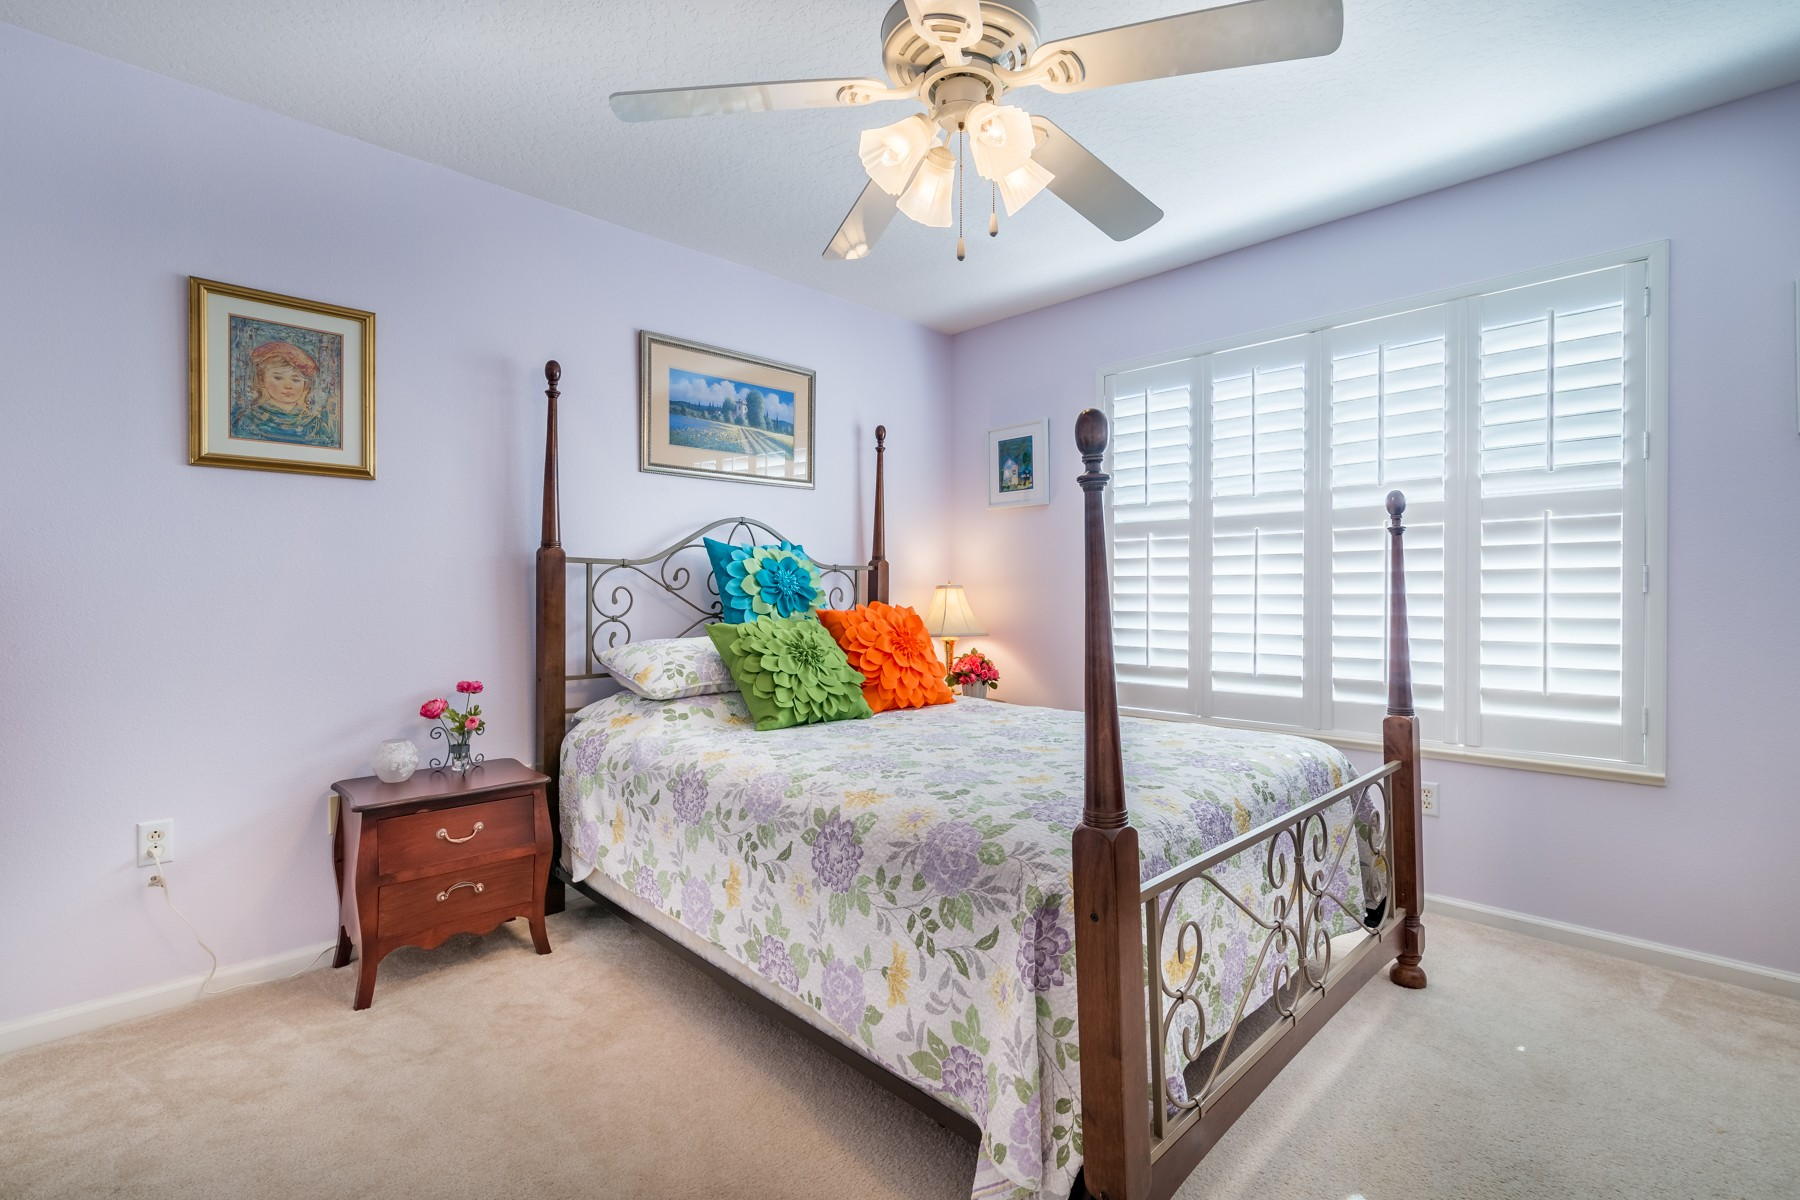 Additional photo for property listing at Bright & open villa in desirable Osprey Villas of Aquarina. 213 Osprey Villas Court Melbourne Beach, Florida 32951 Amerika Birleşik Devletleri